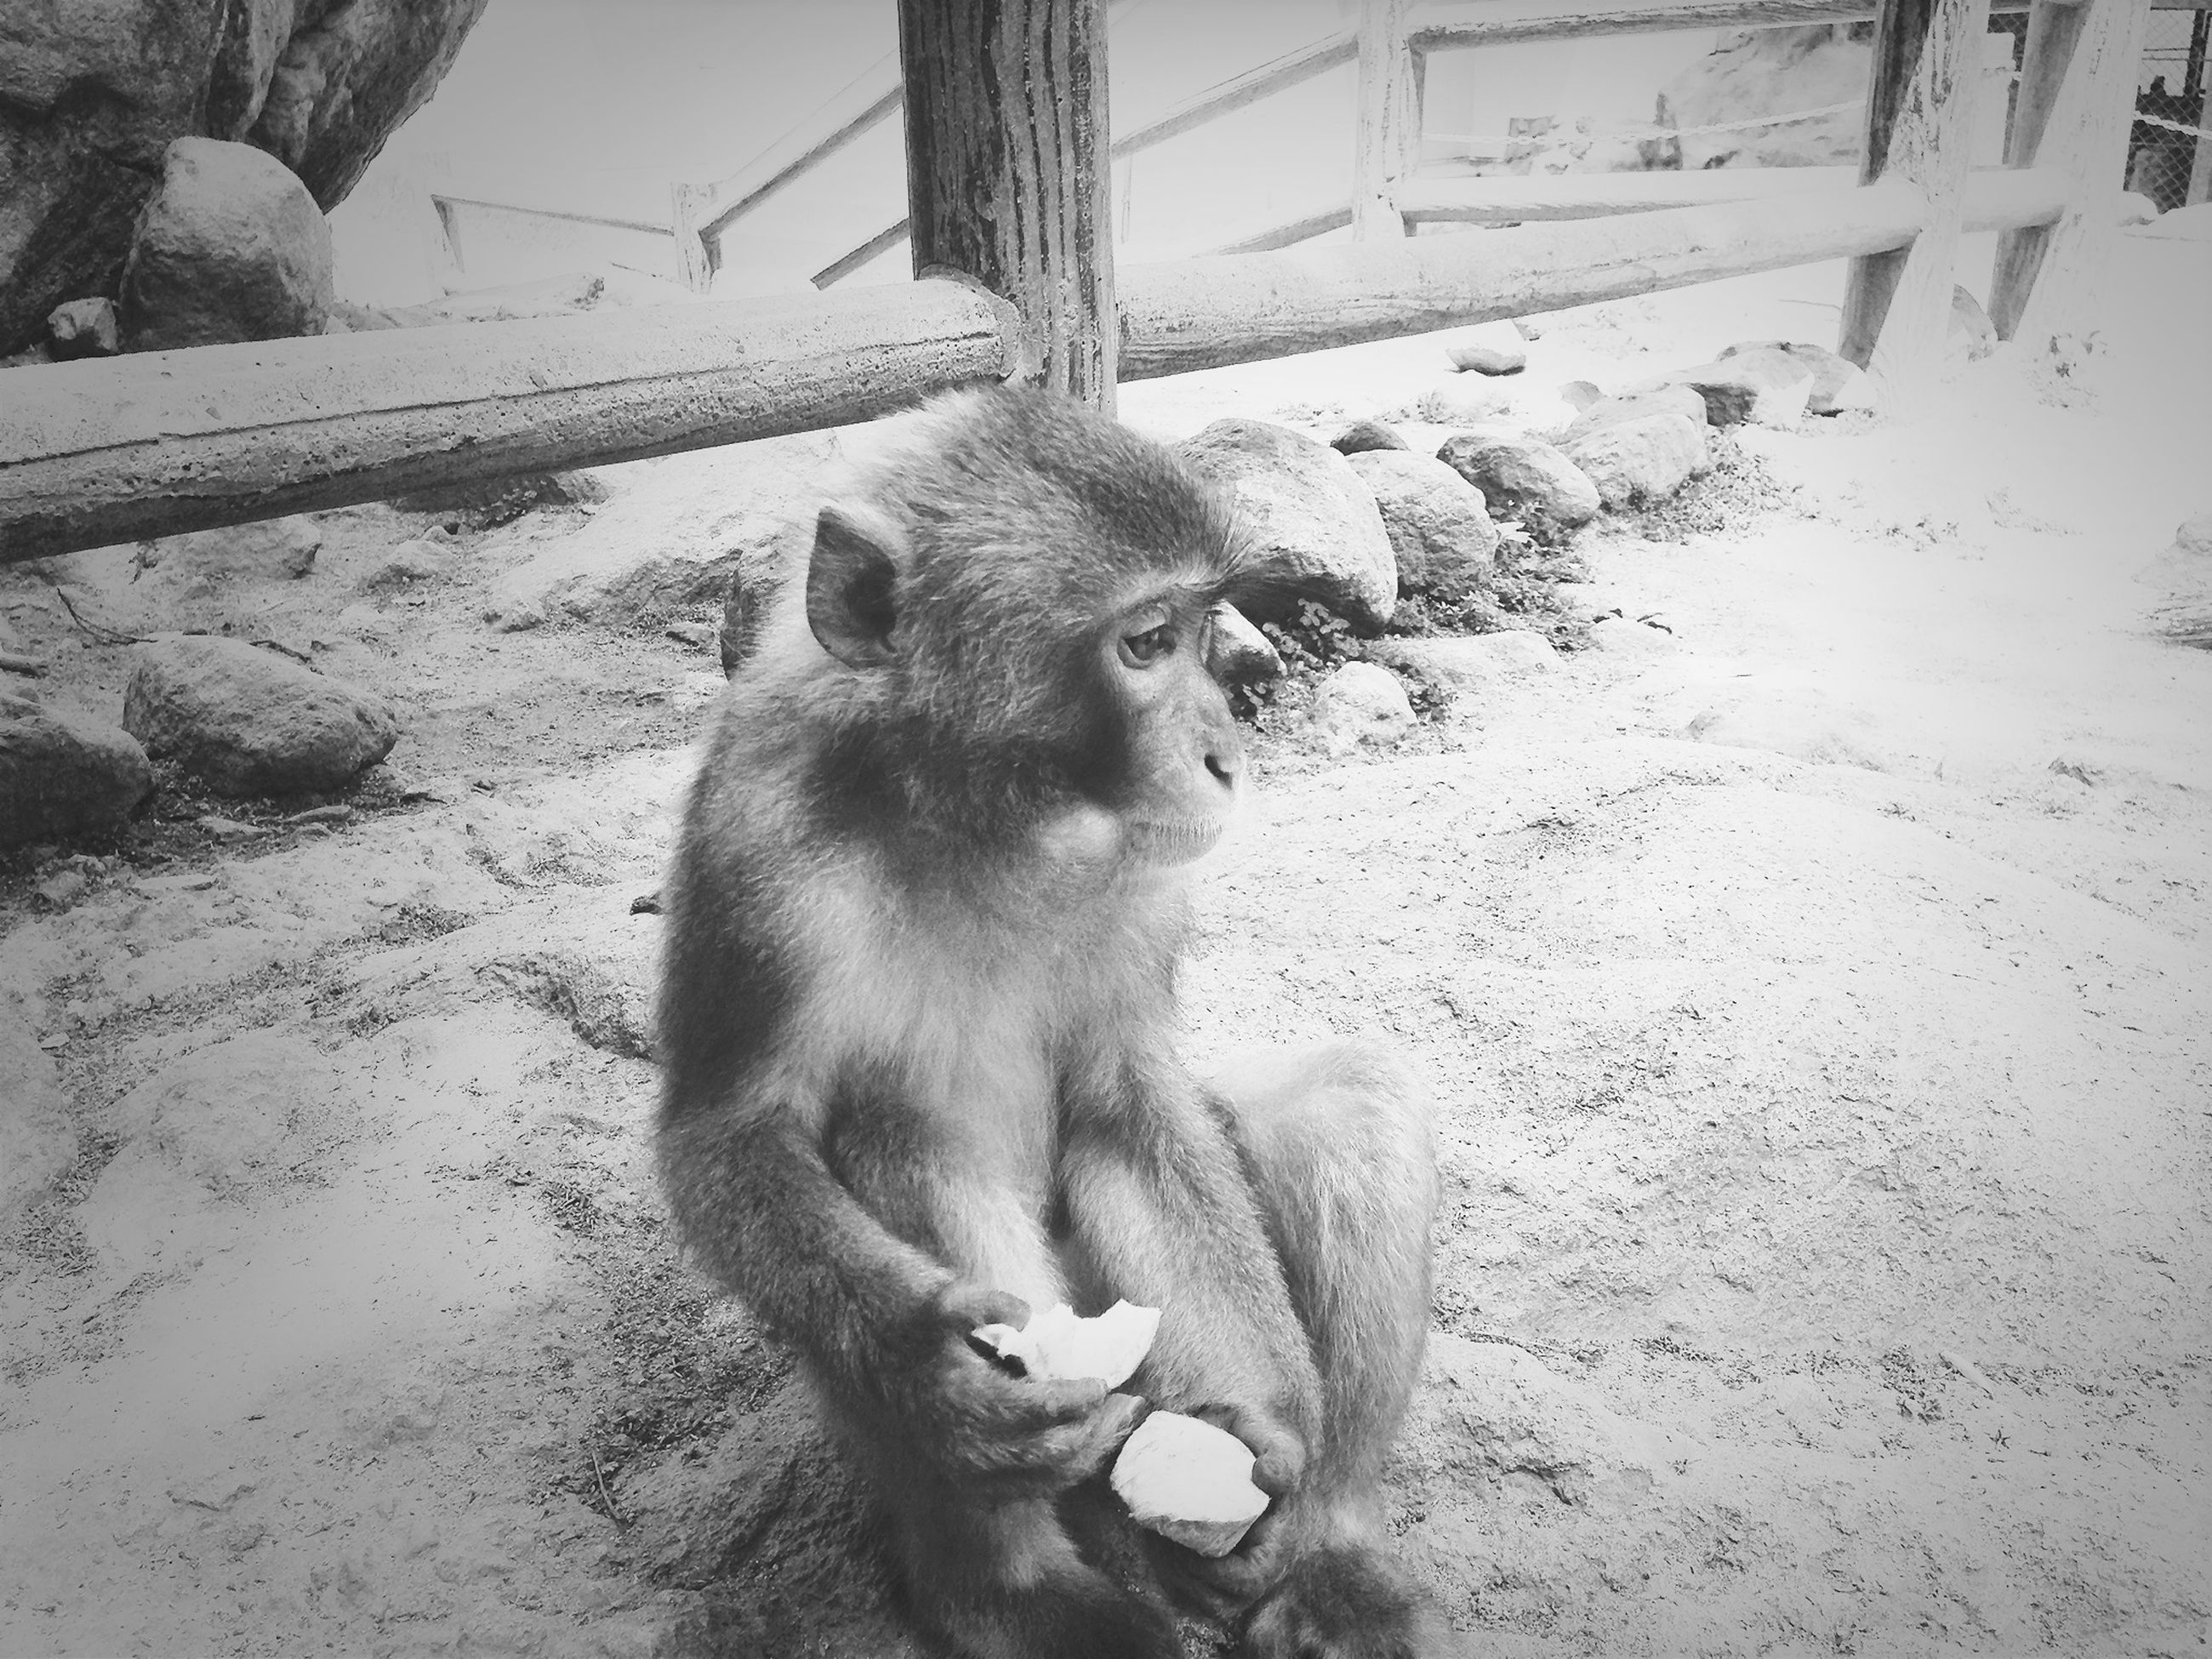 animal themes, one animal, mammal, animals in the wild, wildlife, domestic animals, pets, sitting, full length, zoology, outdoors, day, no people, vertebrate, monkey, high angle view, sunlight, two animals, street, nature